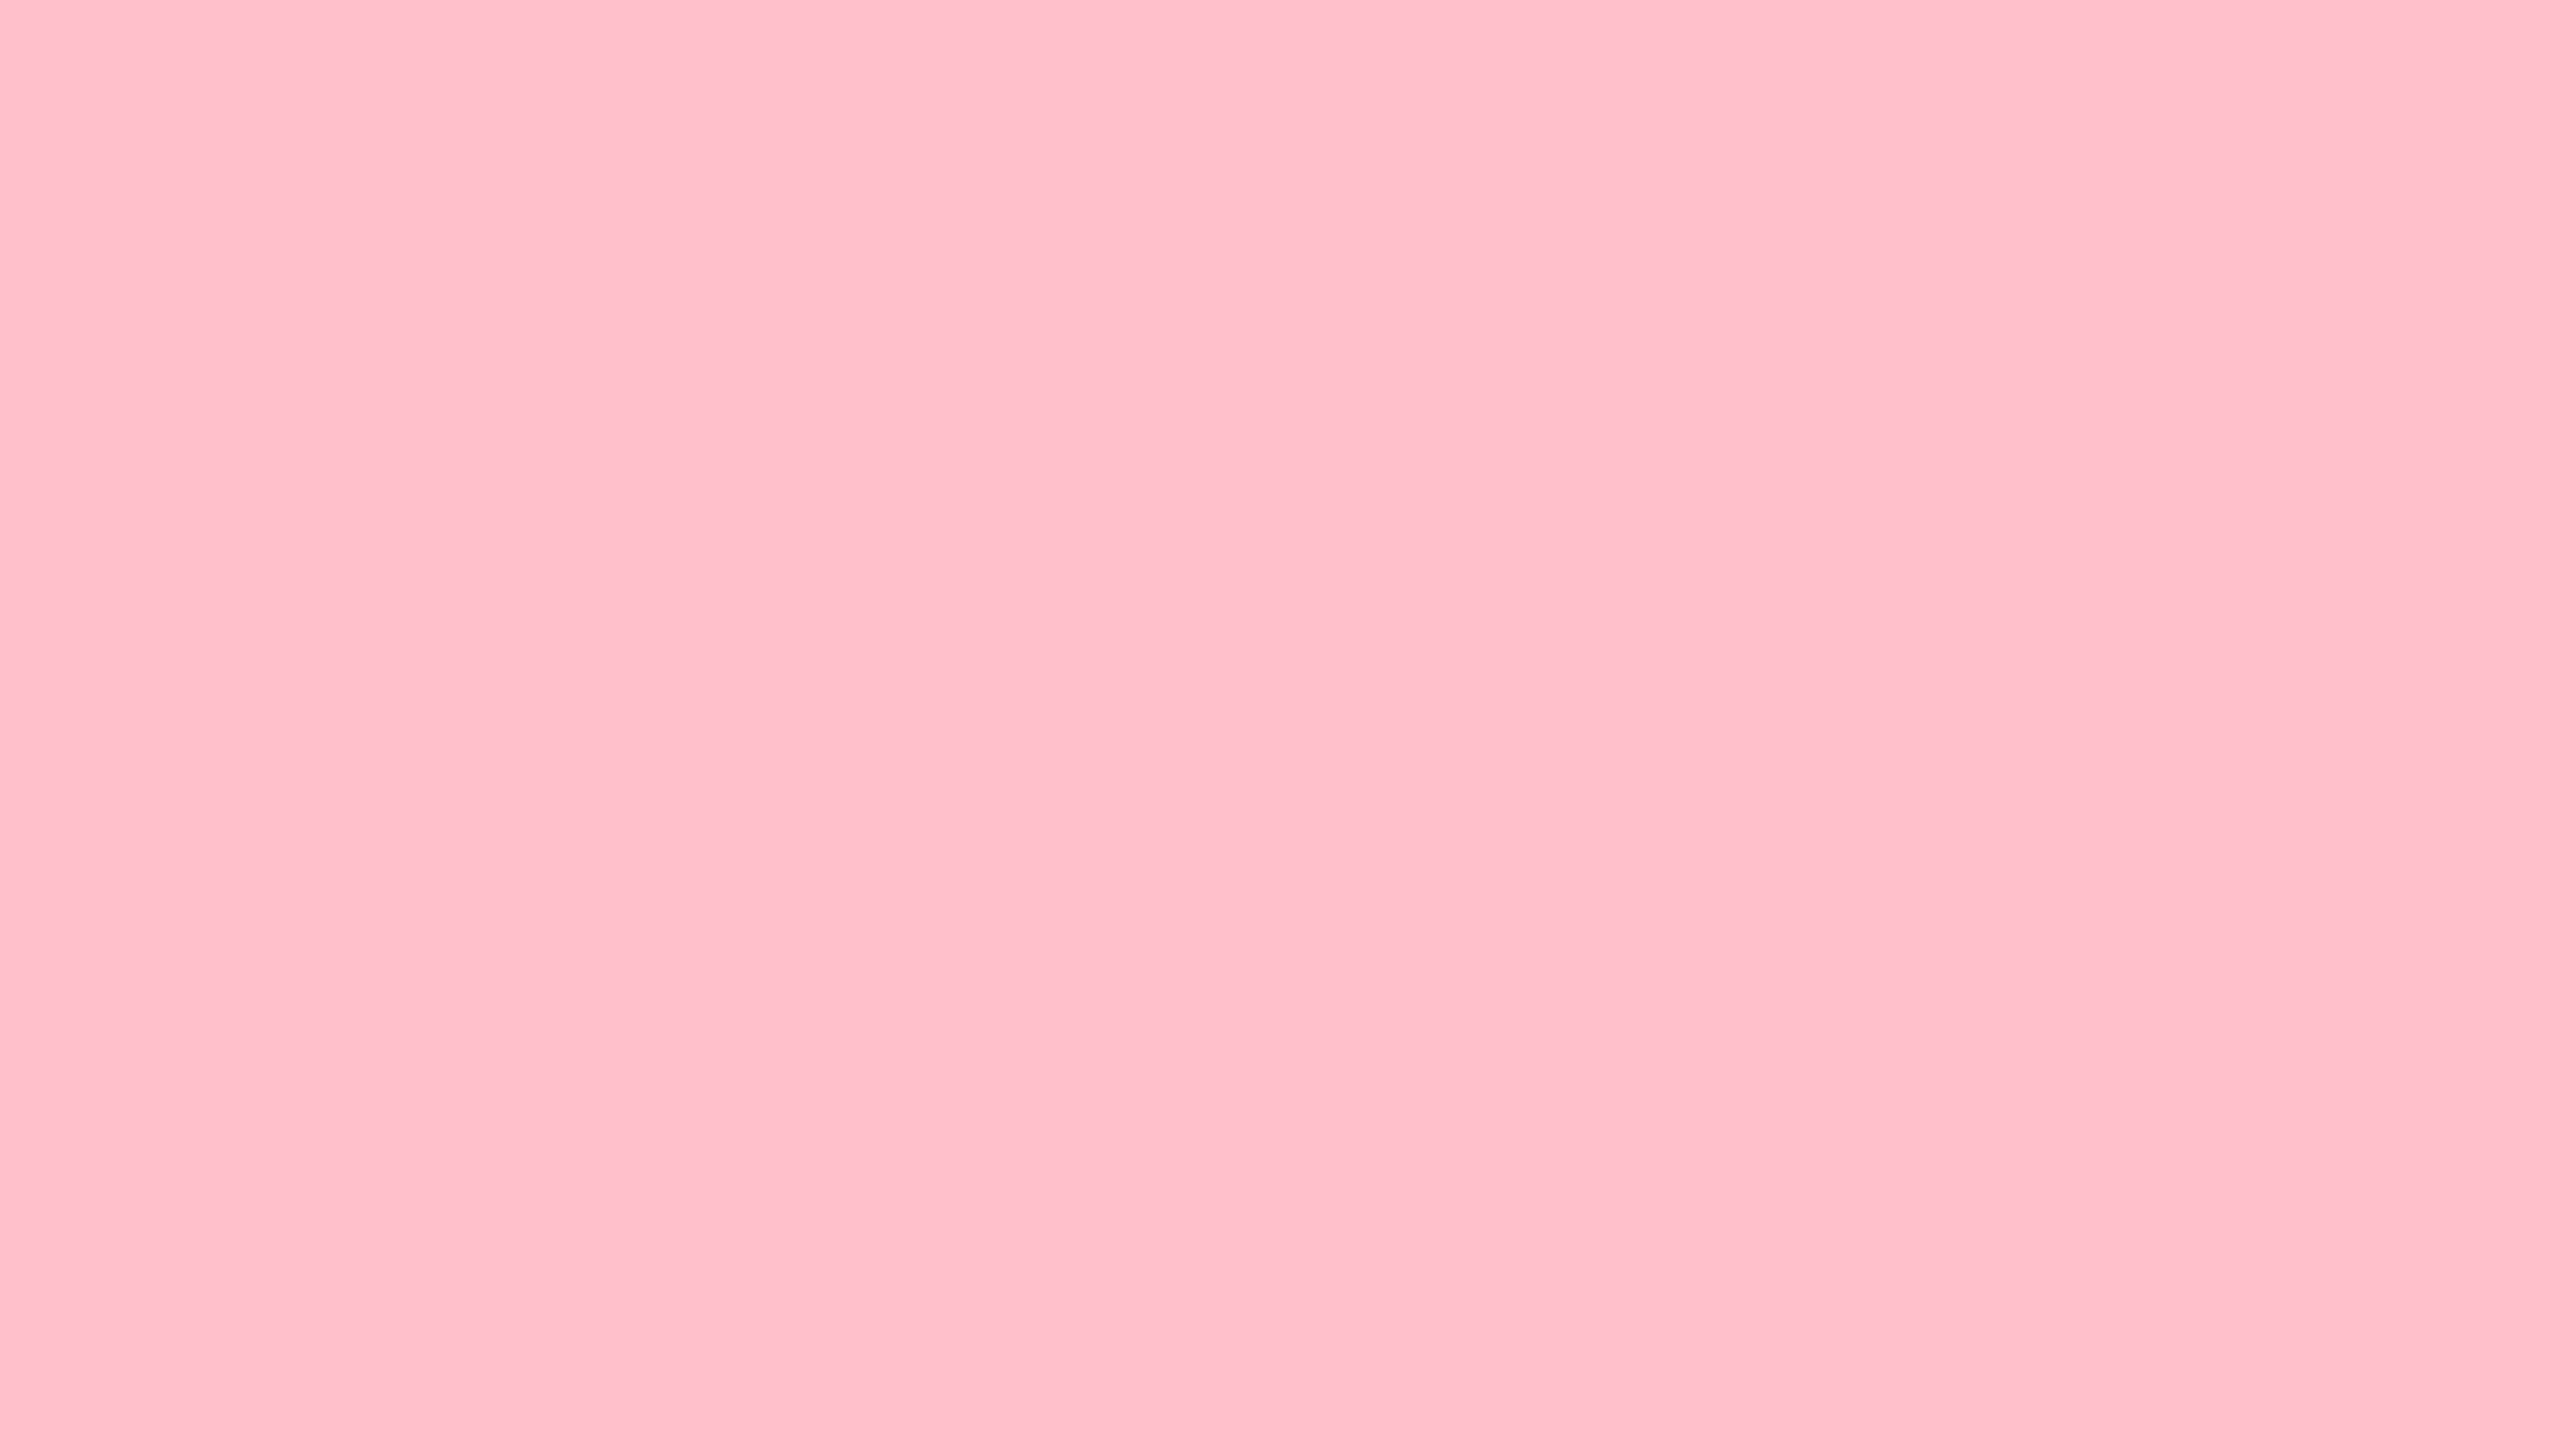 2560x1440 Pink Solid Color Background